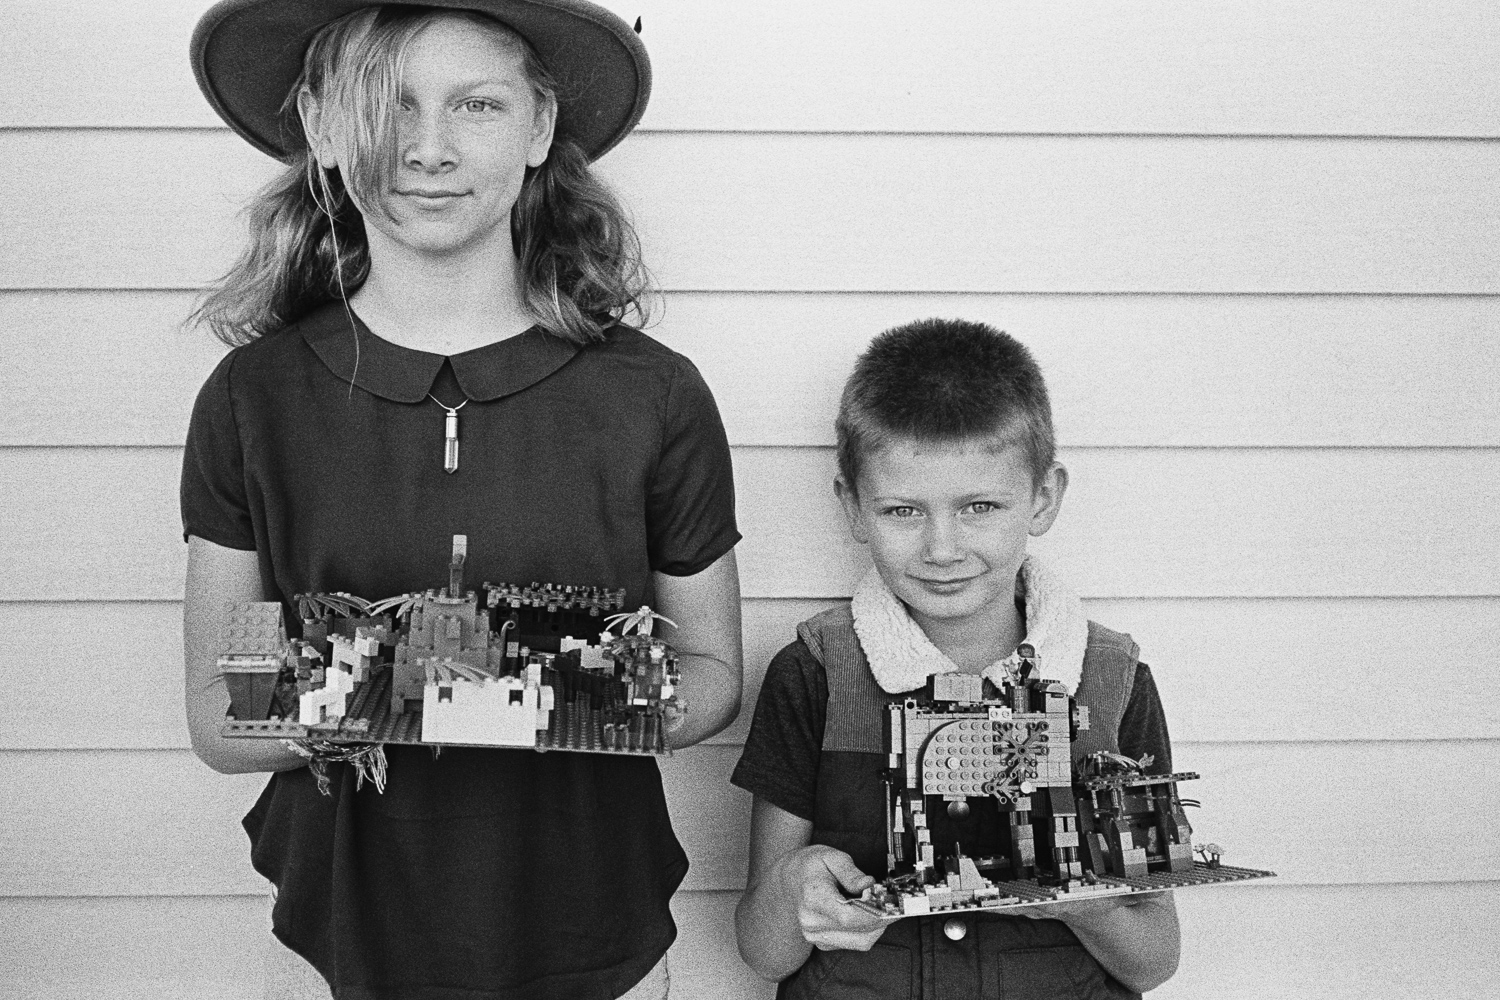 ^ The loinfruits entered a Lego maker competition at the Nashville library.